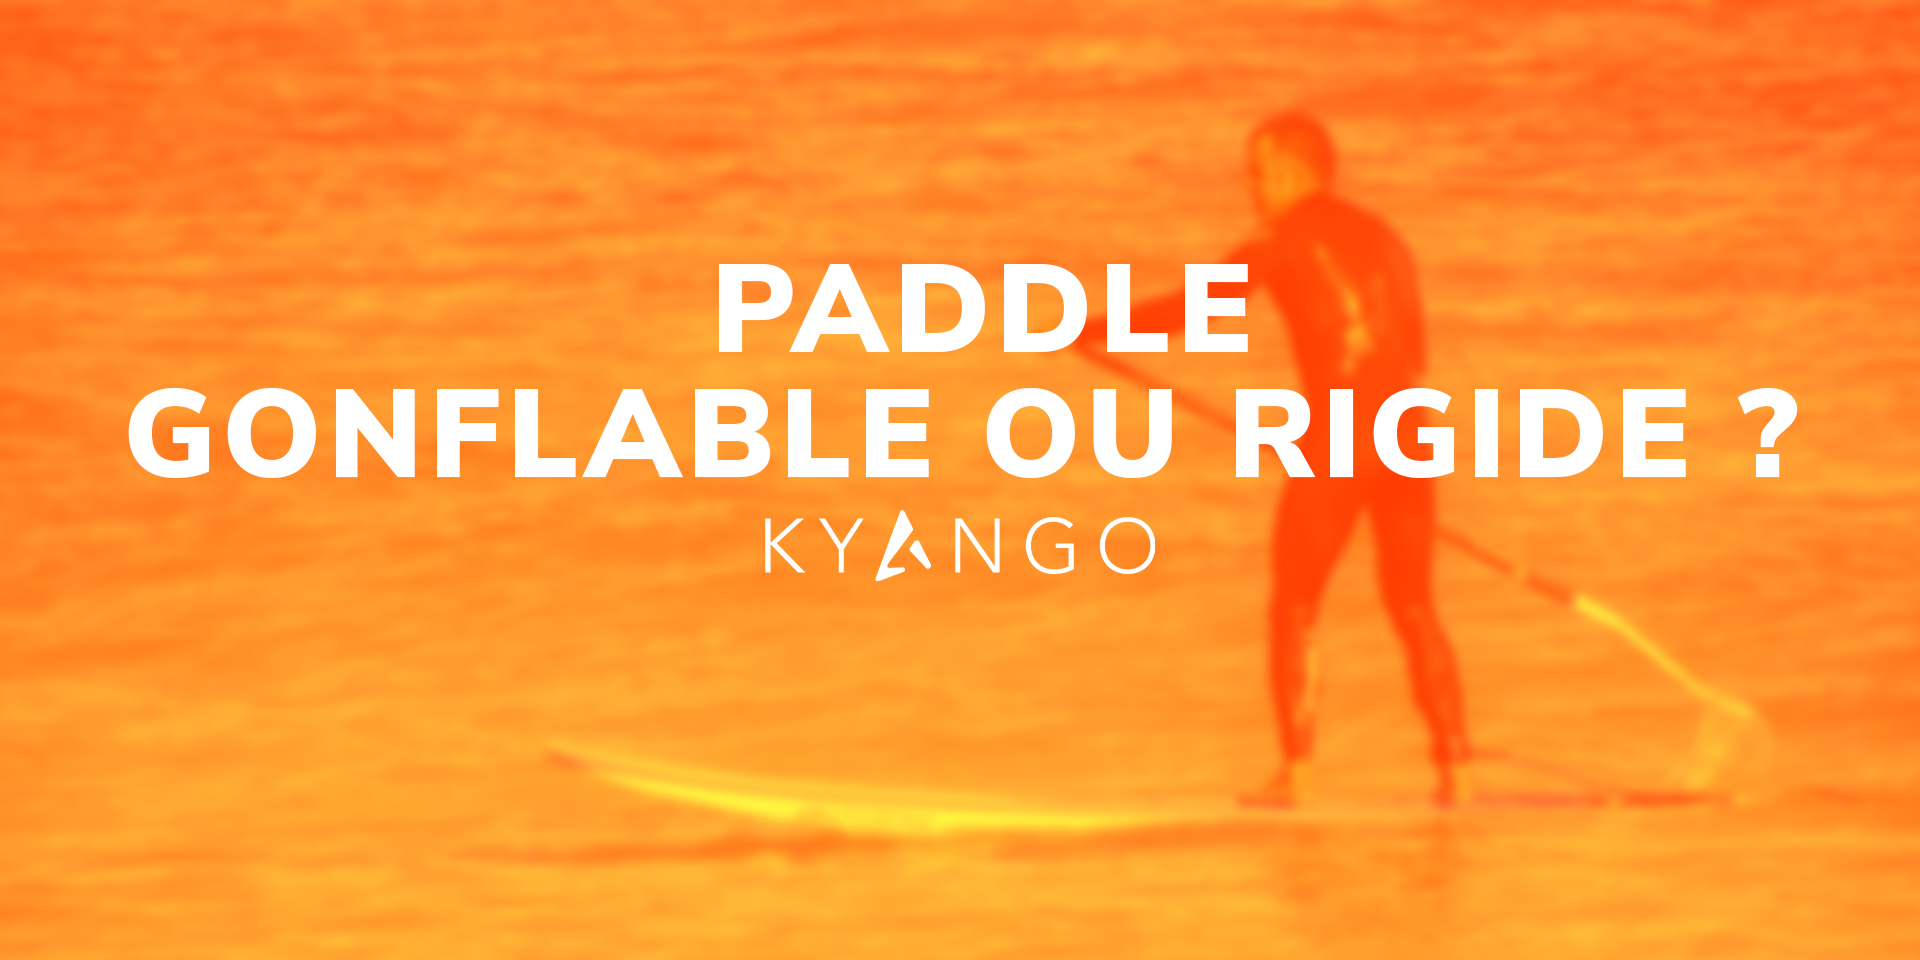 Paddle-gonflable-ou-rigide